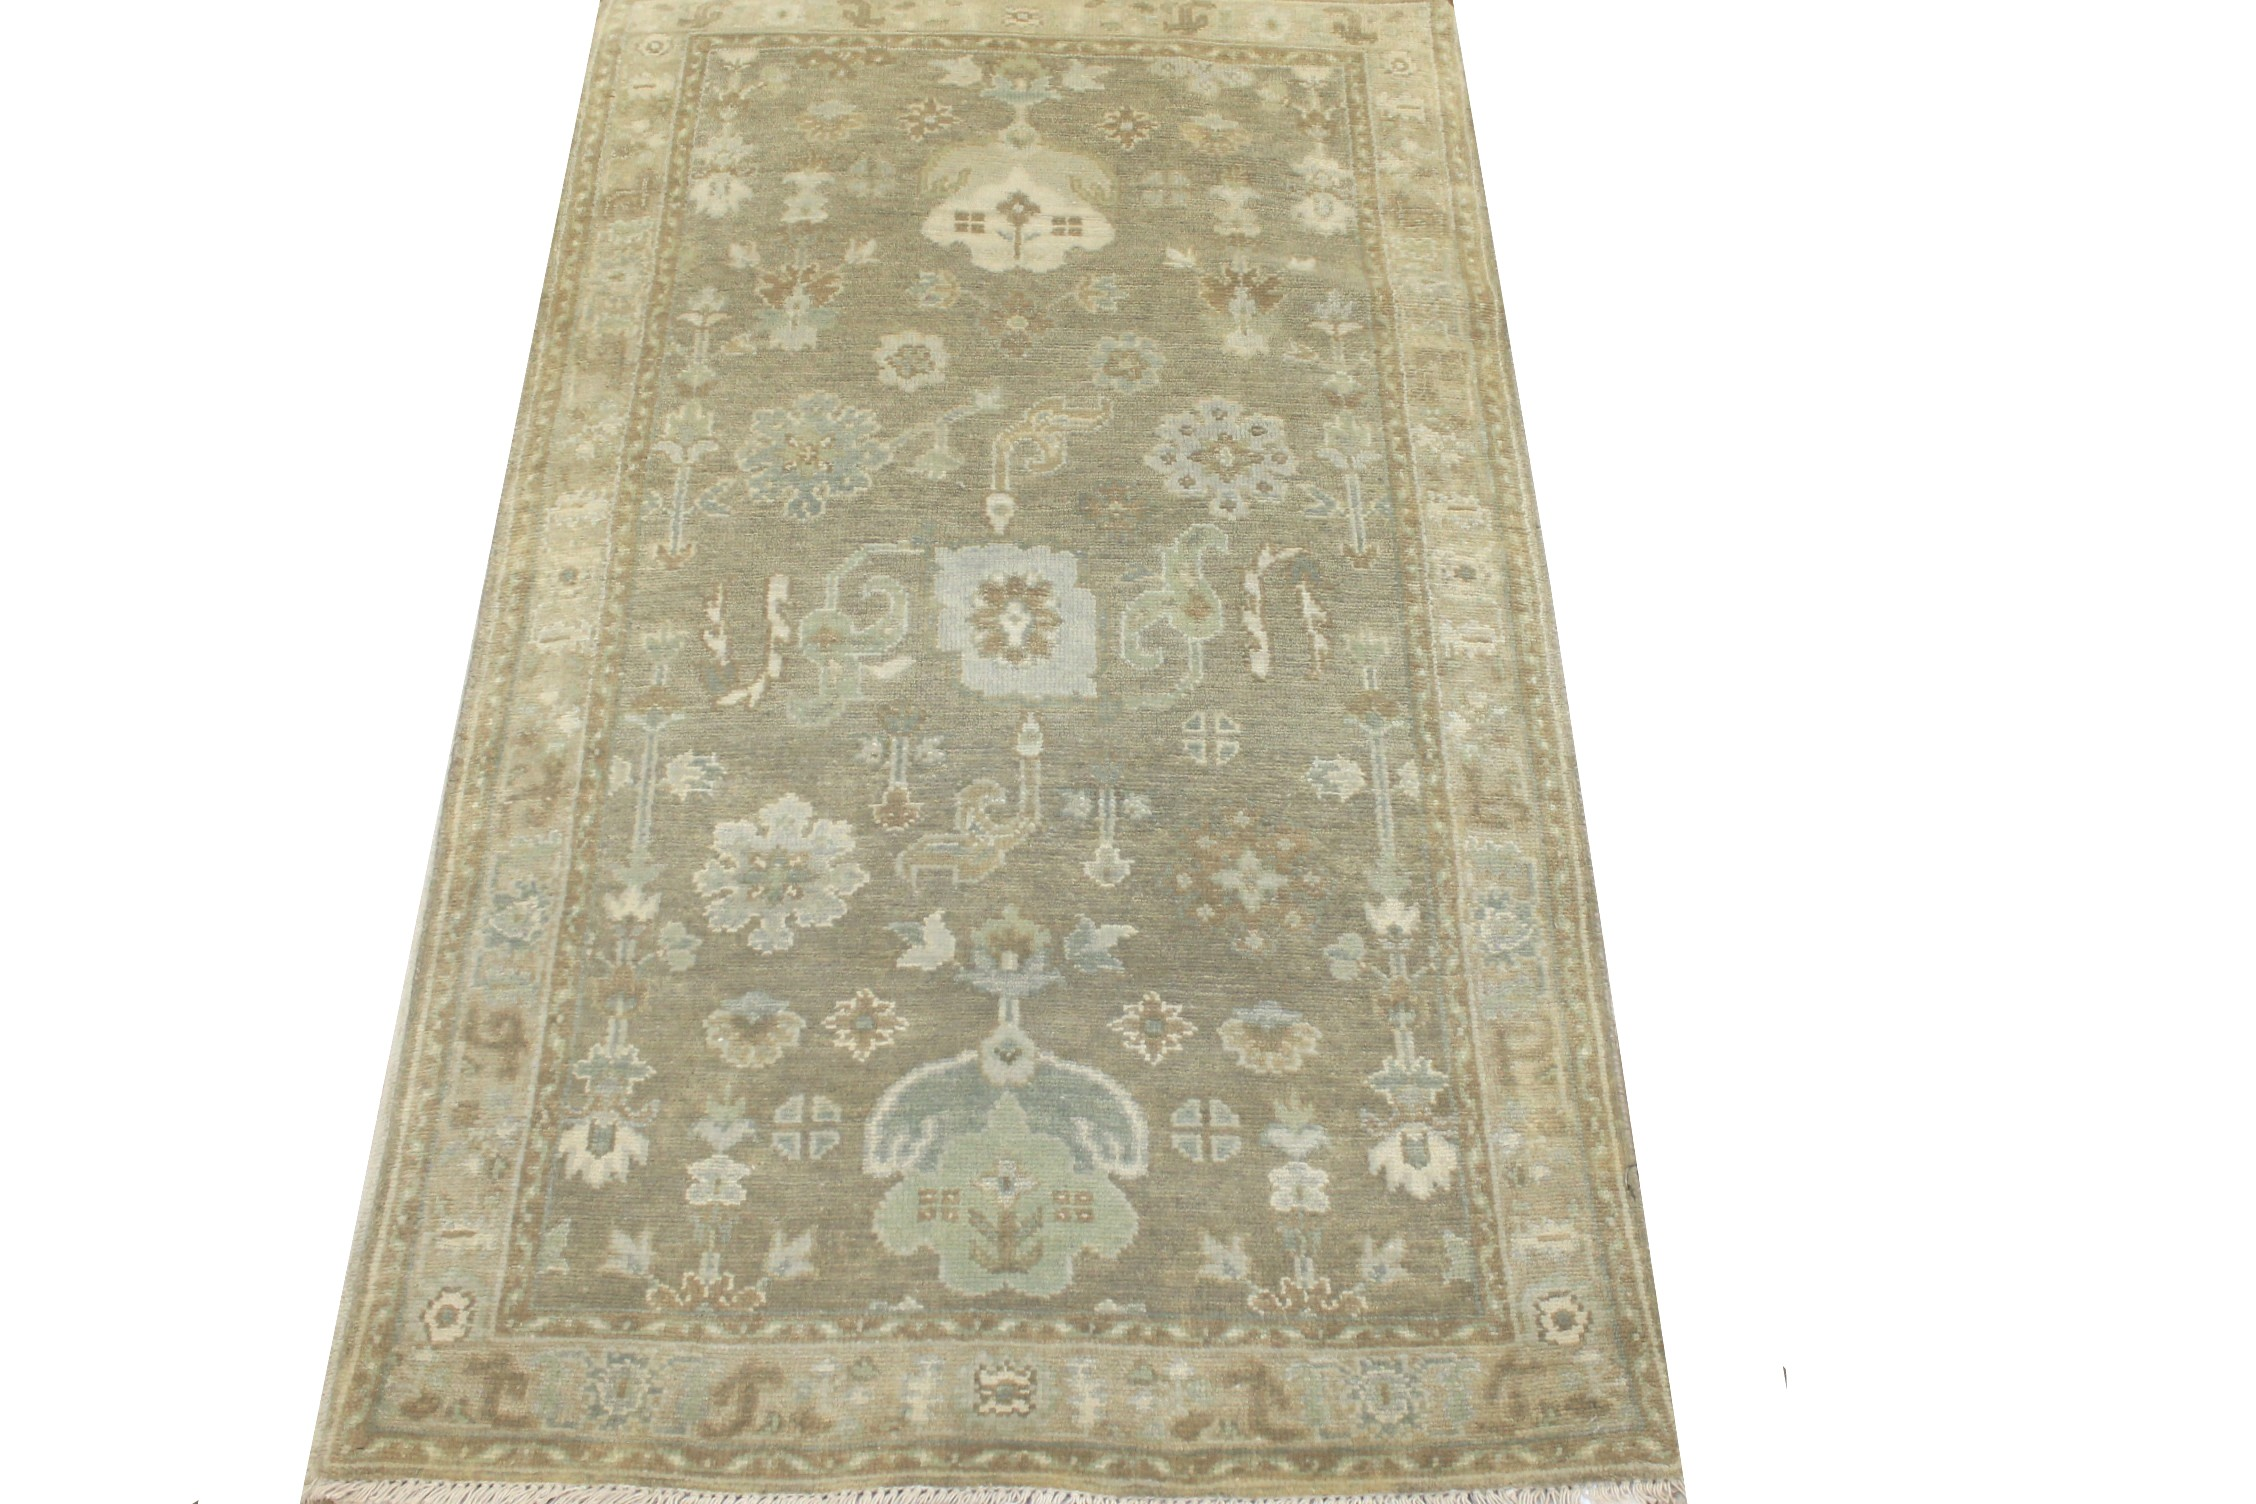 3x5 Oushak Hand Knotted Wool Area Rug - MR024305